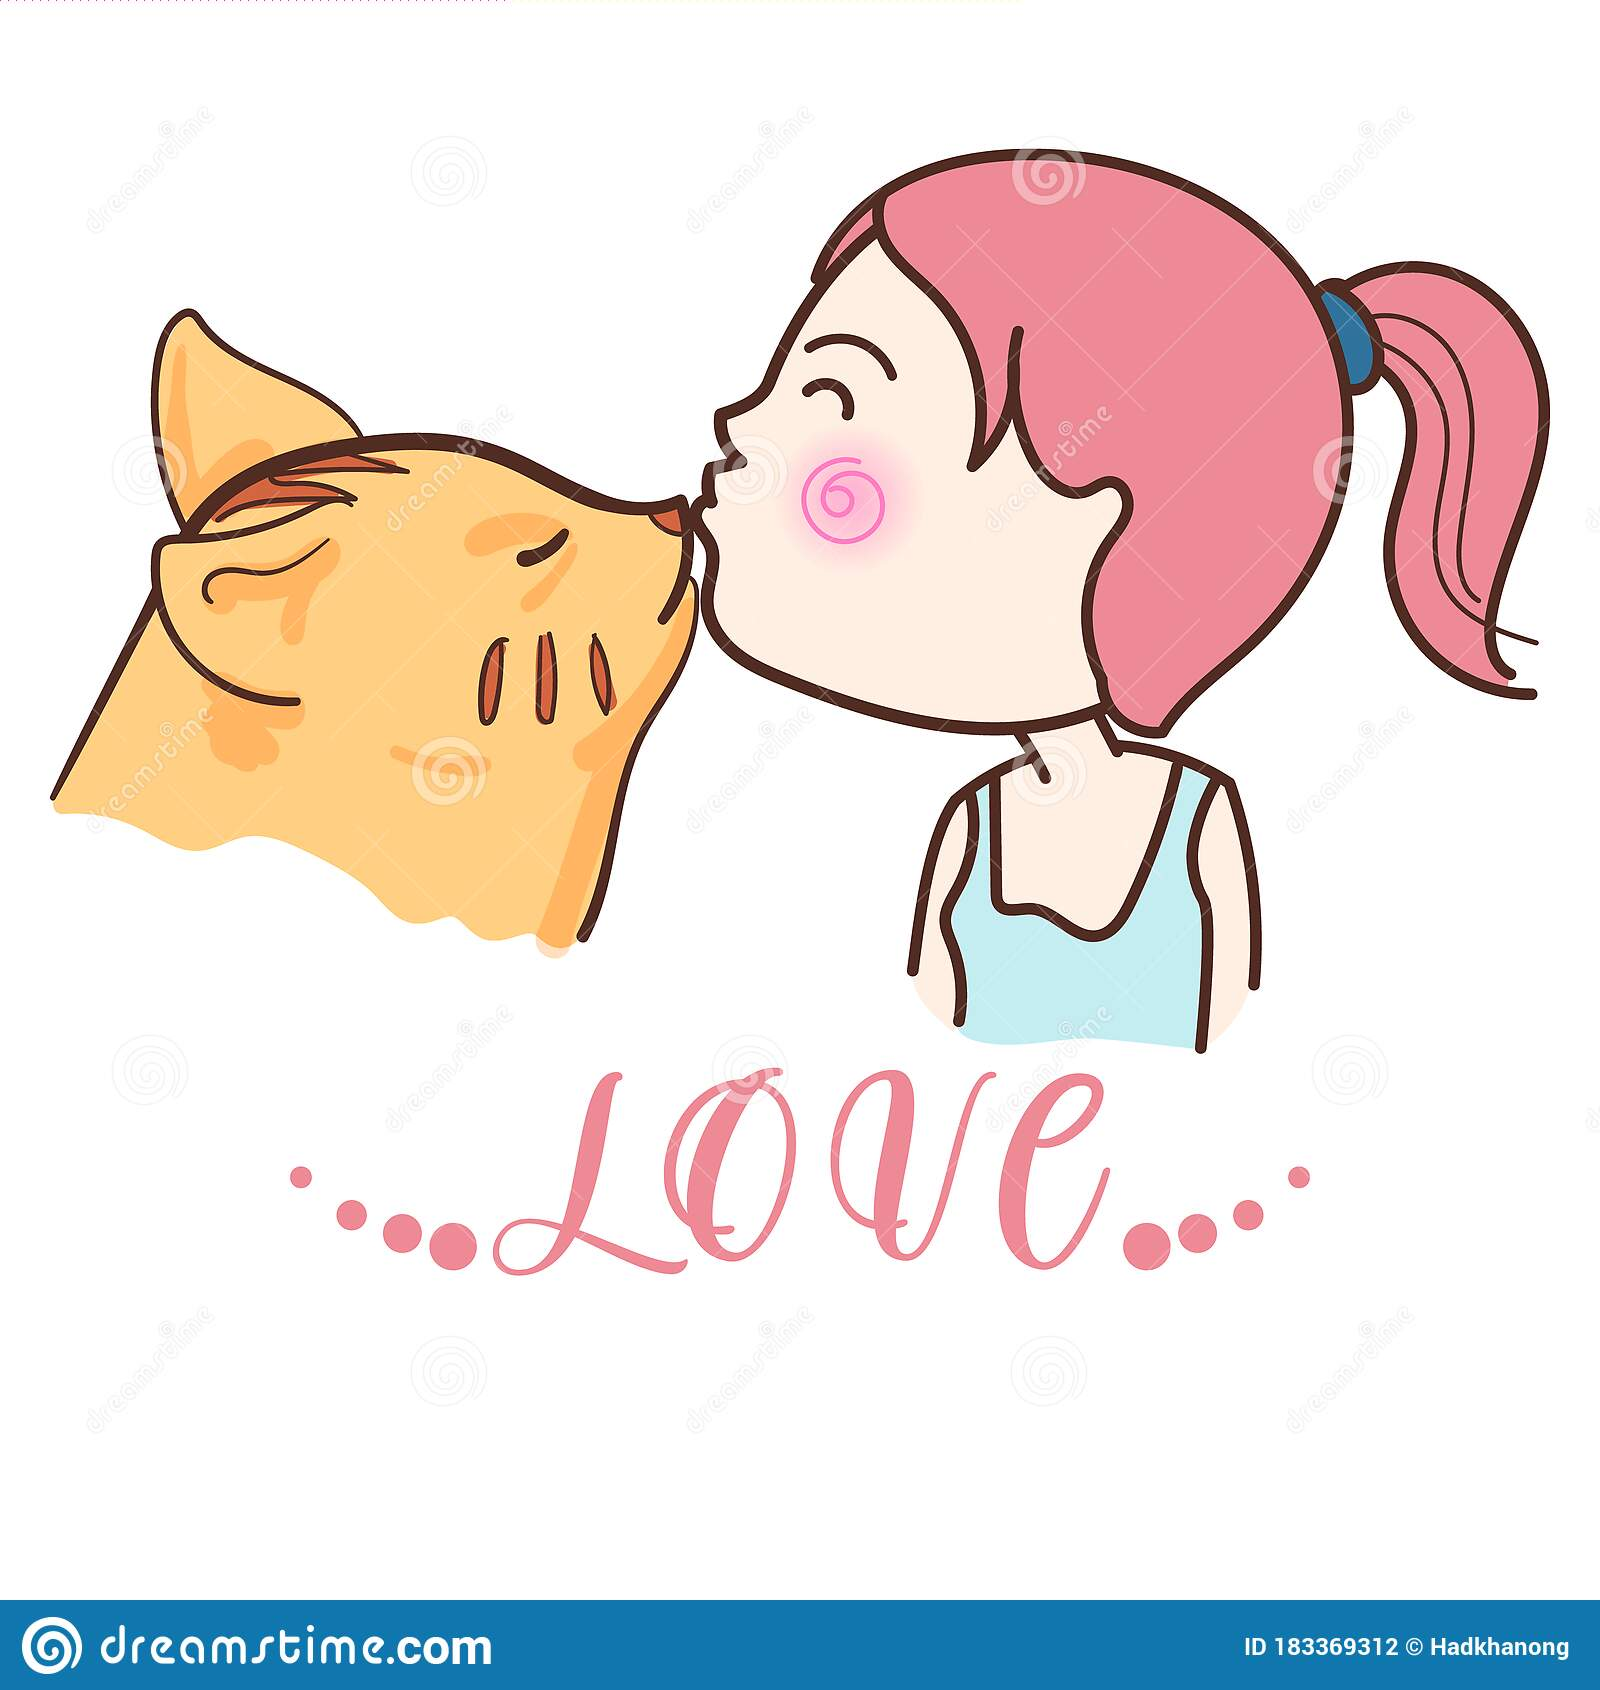 Cute Cat Kiss Young Girl Lovely Bonding And Relationship Between Animal And Human Stock Vector Illustration Of Care Bonding 183369312